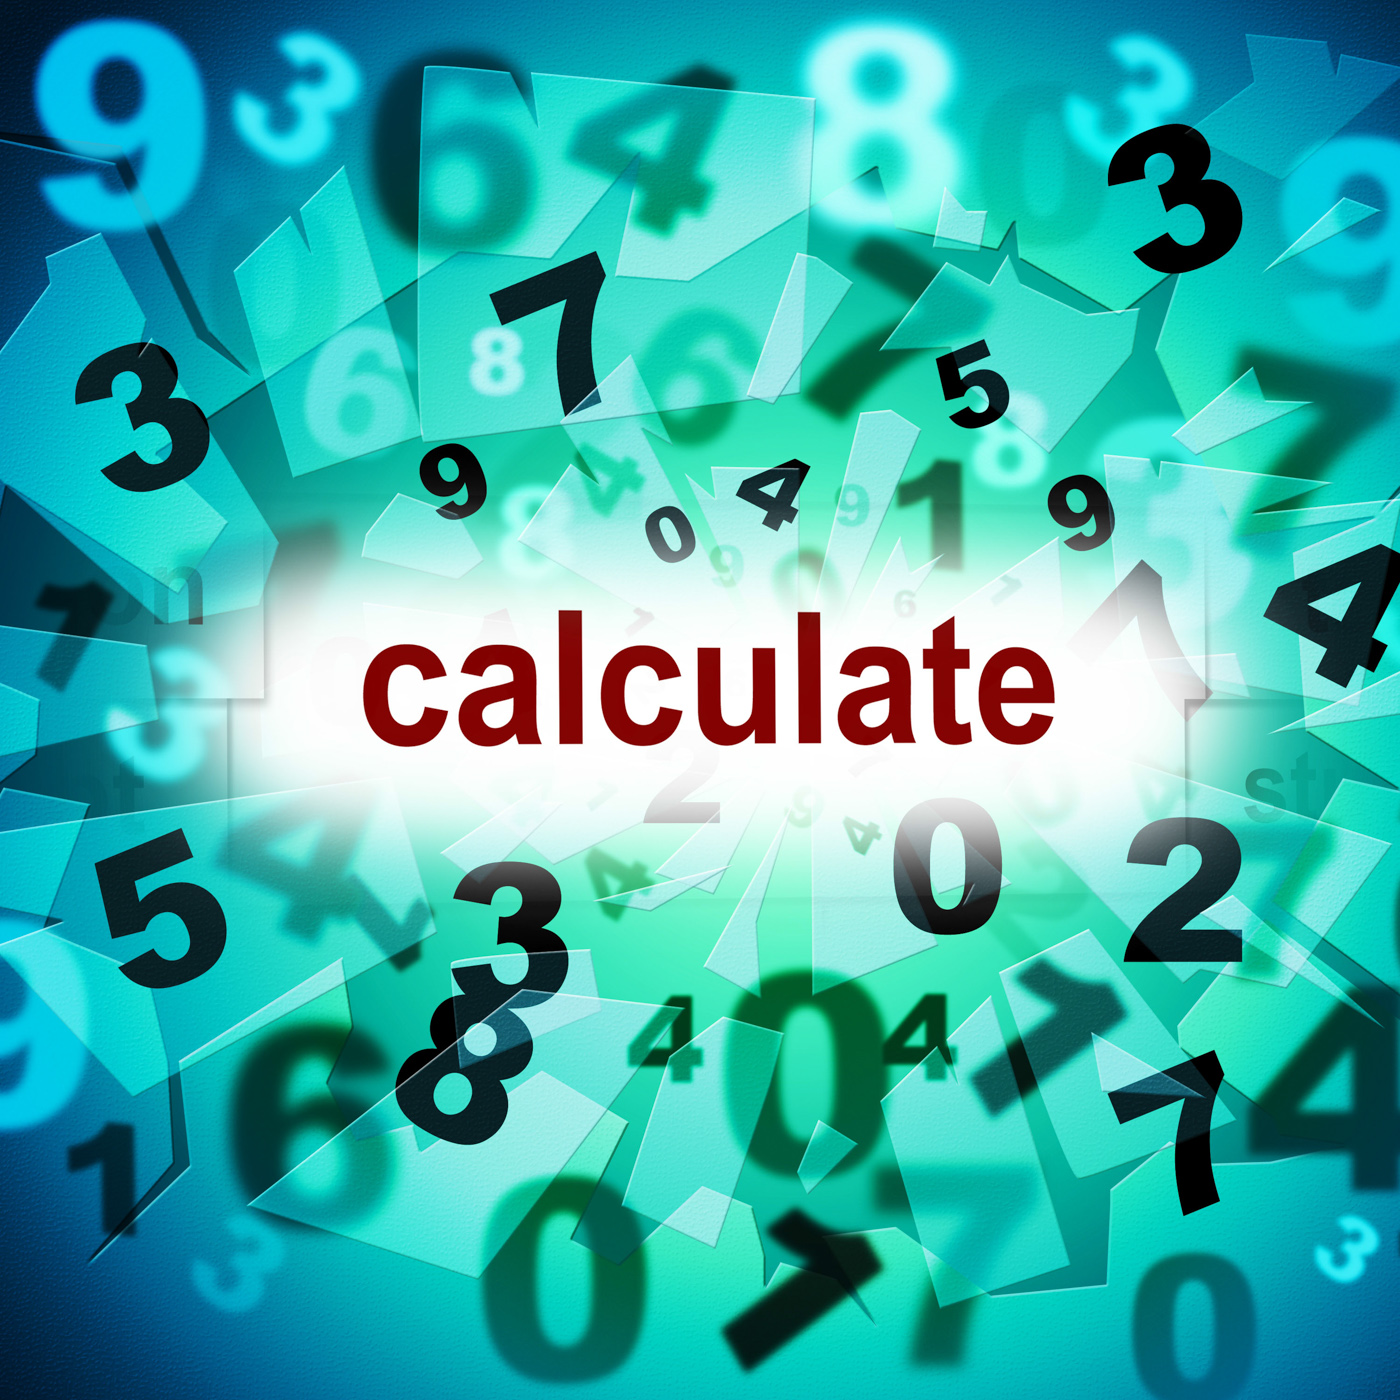 Free photo: Calculation Mathematics Represents One Two Three And ...